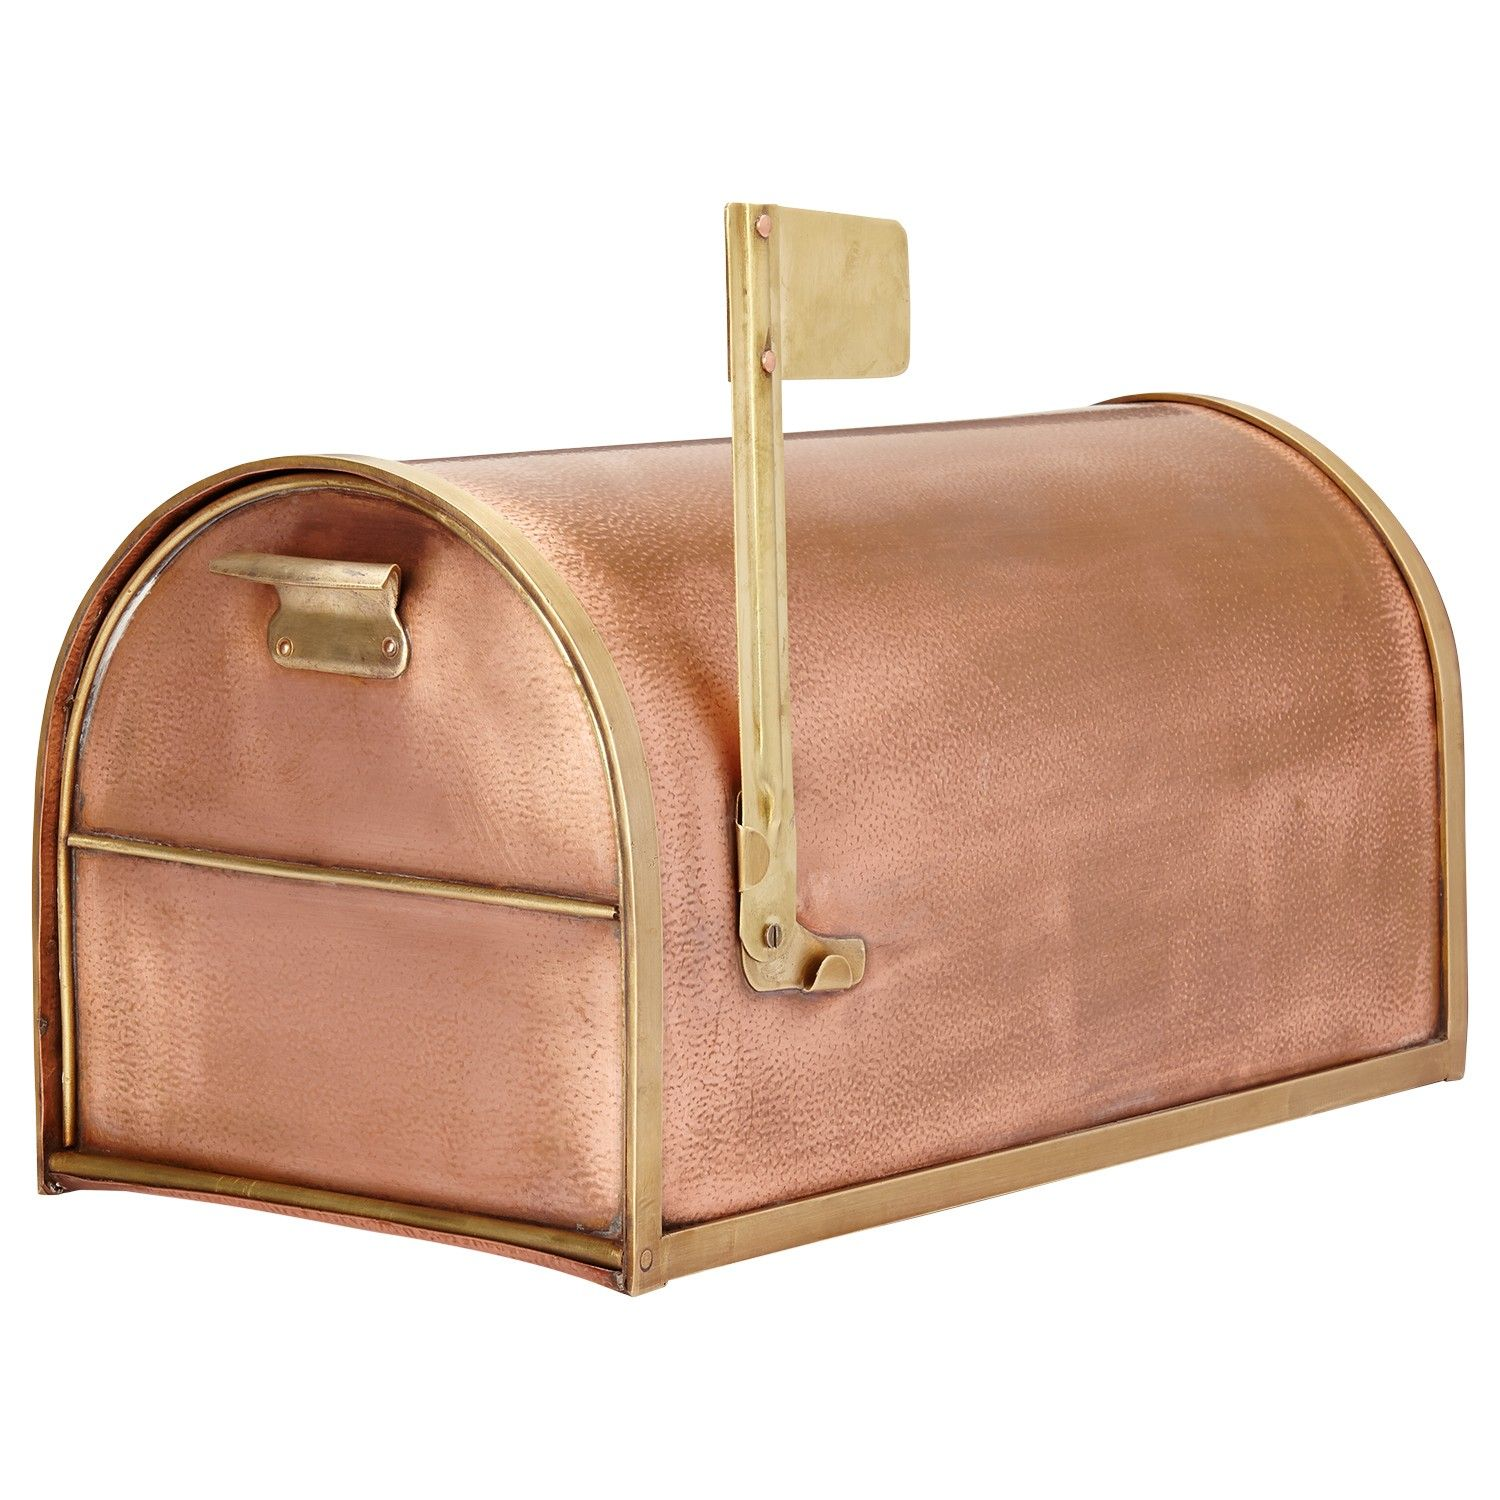 Classic Post Mount Copper Mailbox With Brass Accents Copper Mailbox Mounted Mailbox Post Mount